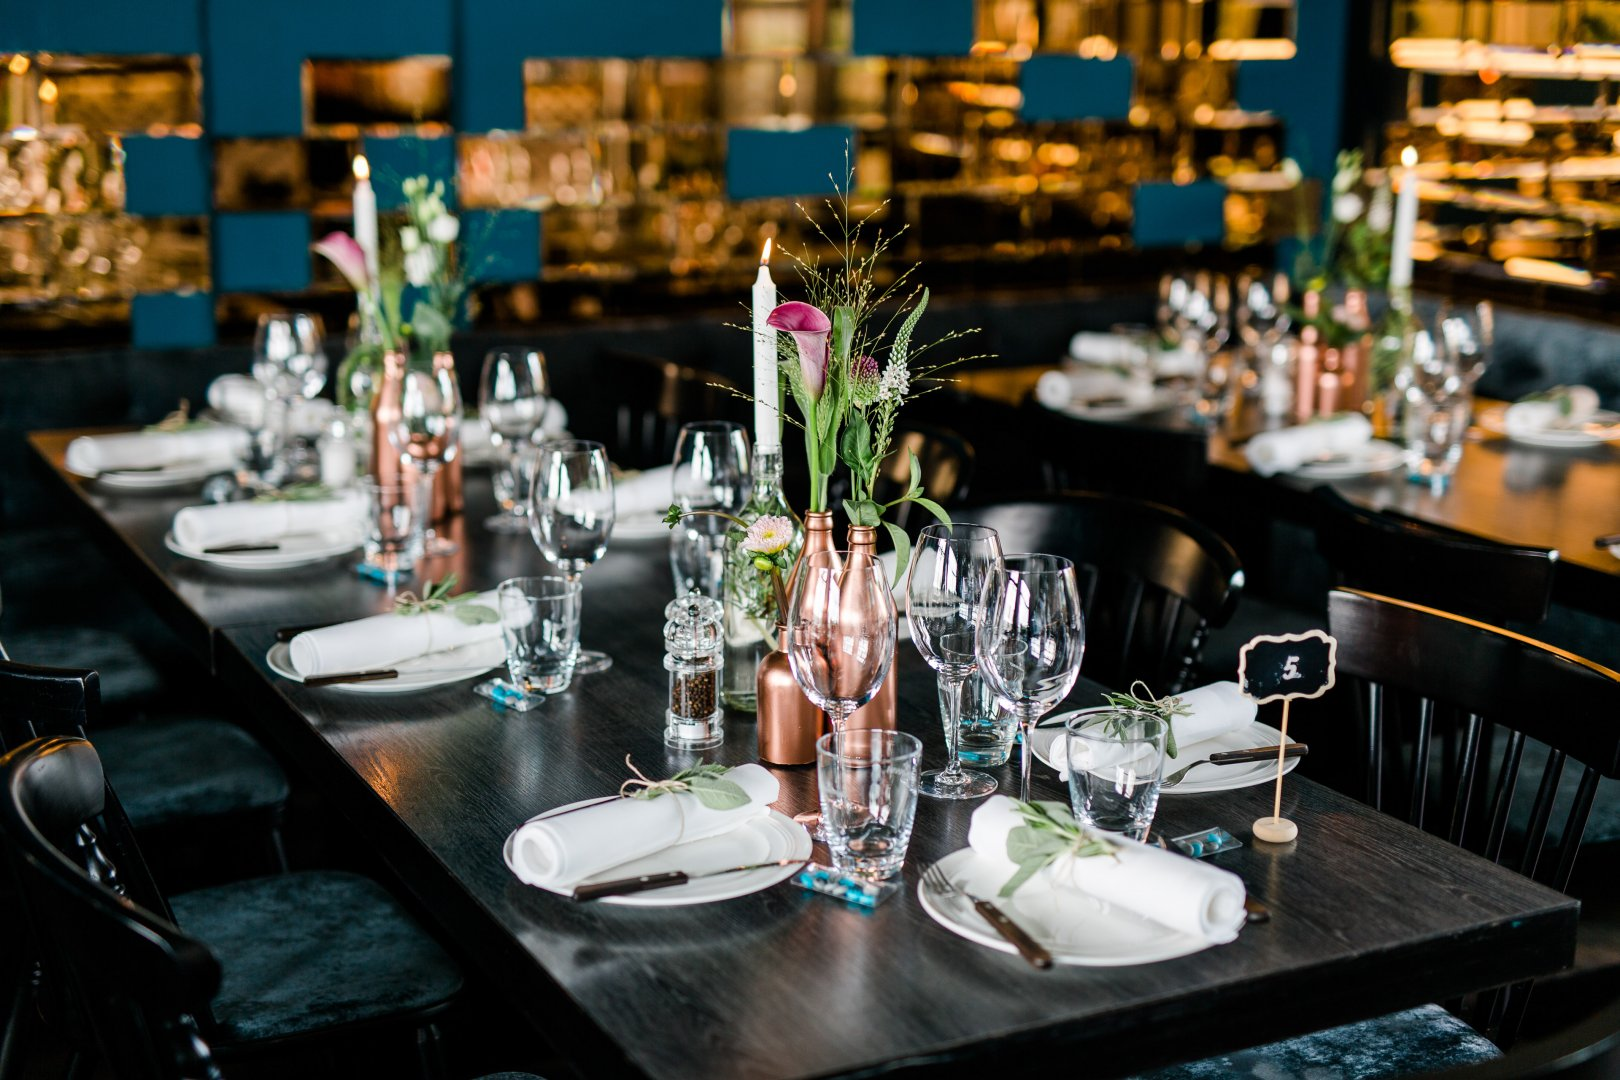 Rehearsal dinner Centrepiece Turquoise Table Restaurant Room Flower Banquet Event Wedding reception Textile Furniture Party Tableware Interior design Tablecloth Plant Function hall Meal Ceremony Floristry